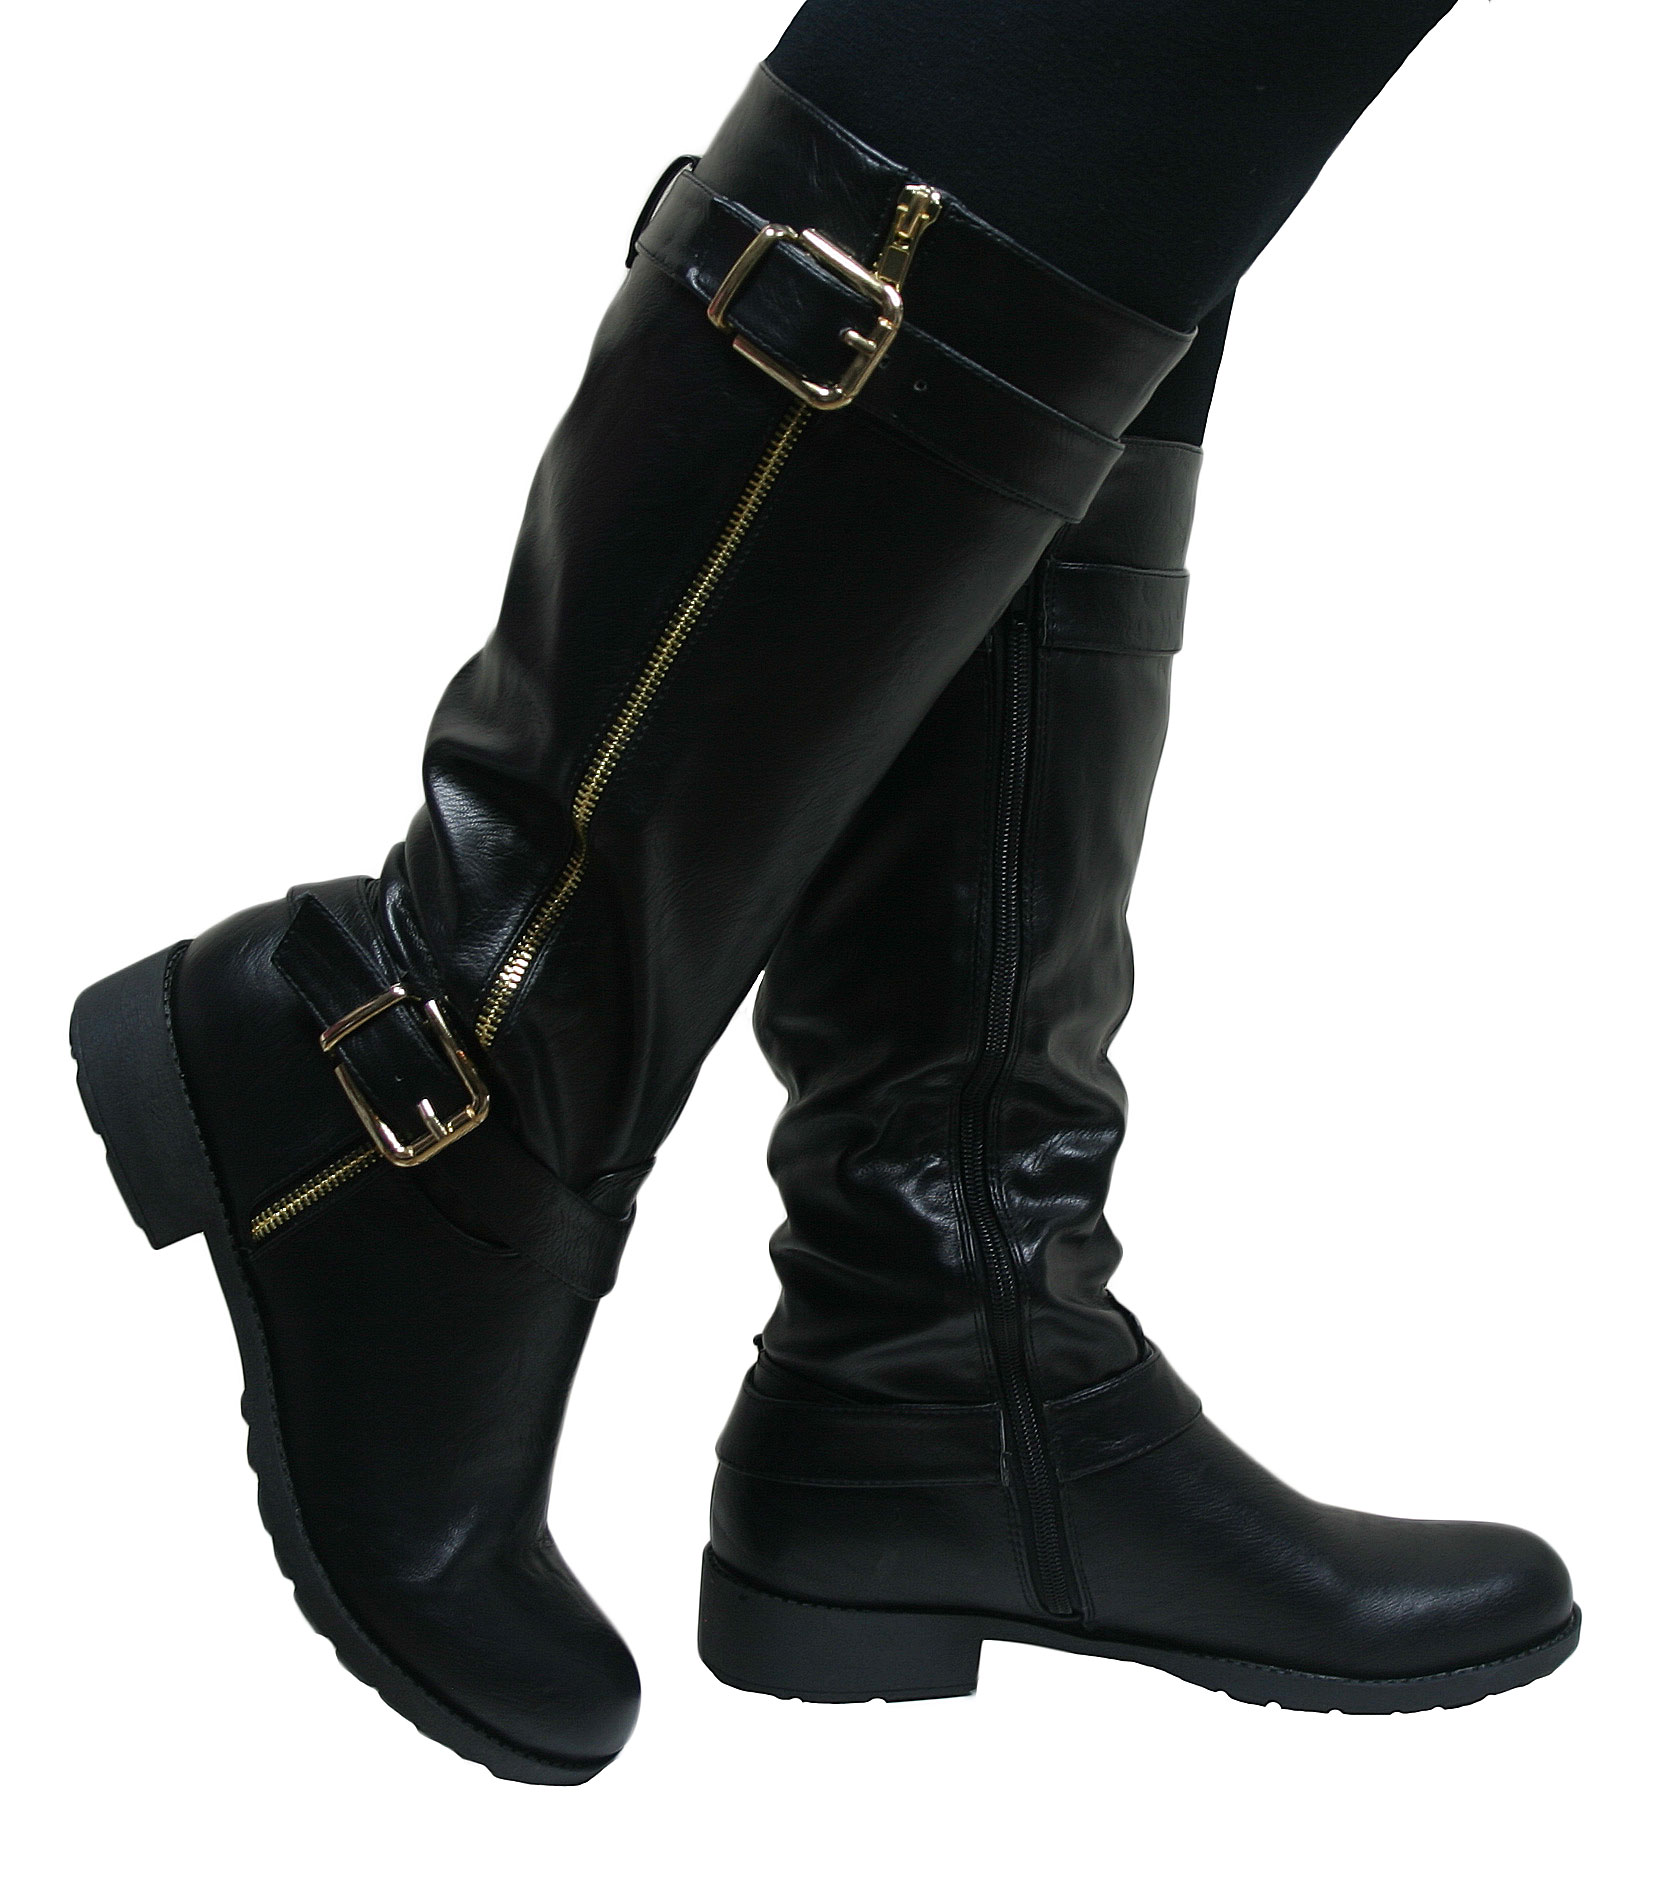 Lastest WOMENS LADIES BLOCK HEEL KNEE HIGH BLACK LEATHER STYLE BOOTS SIZE 38